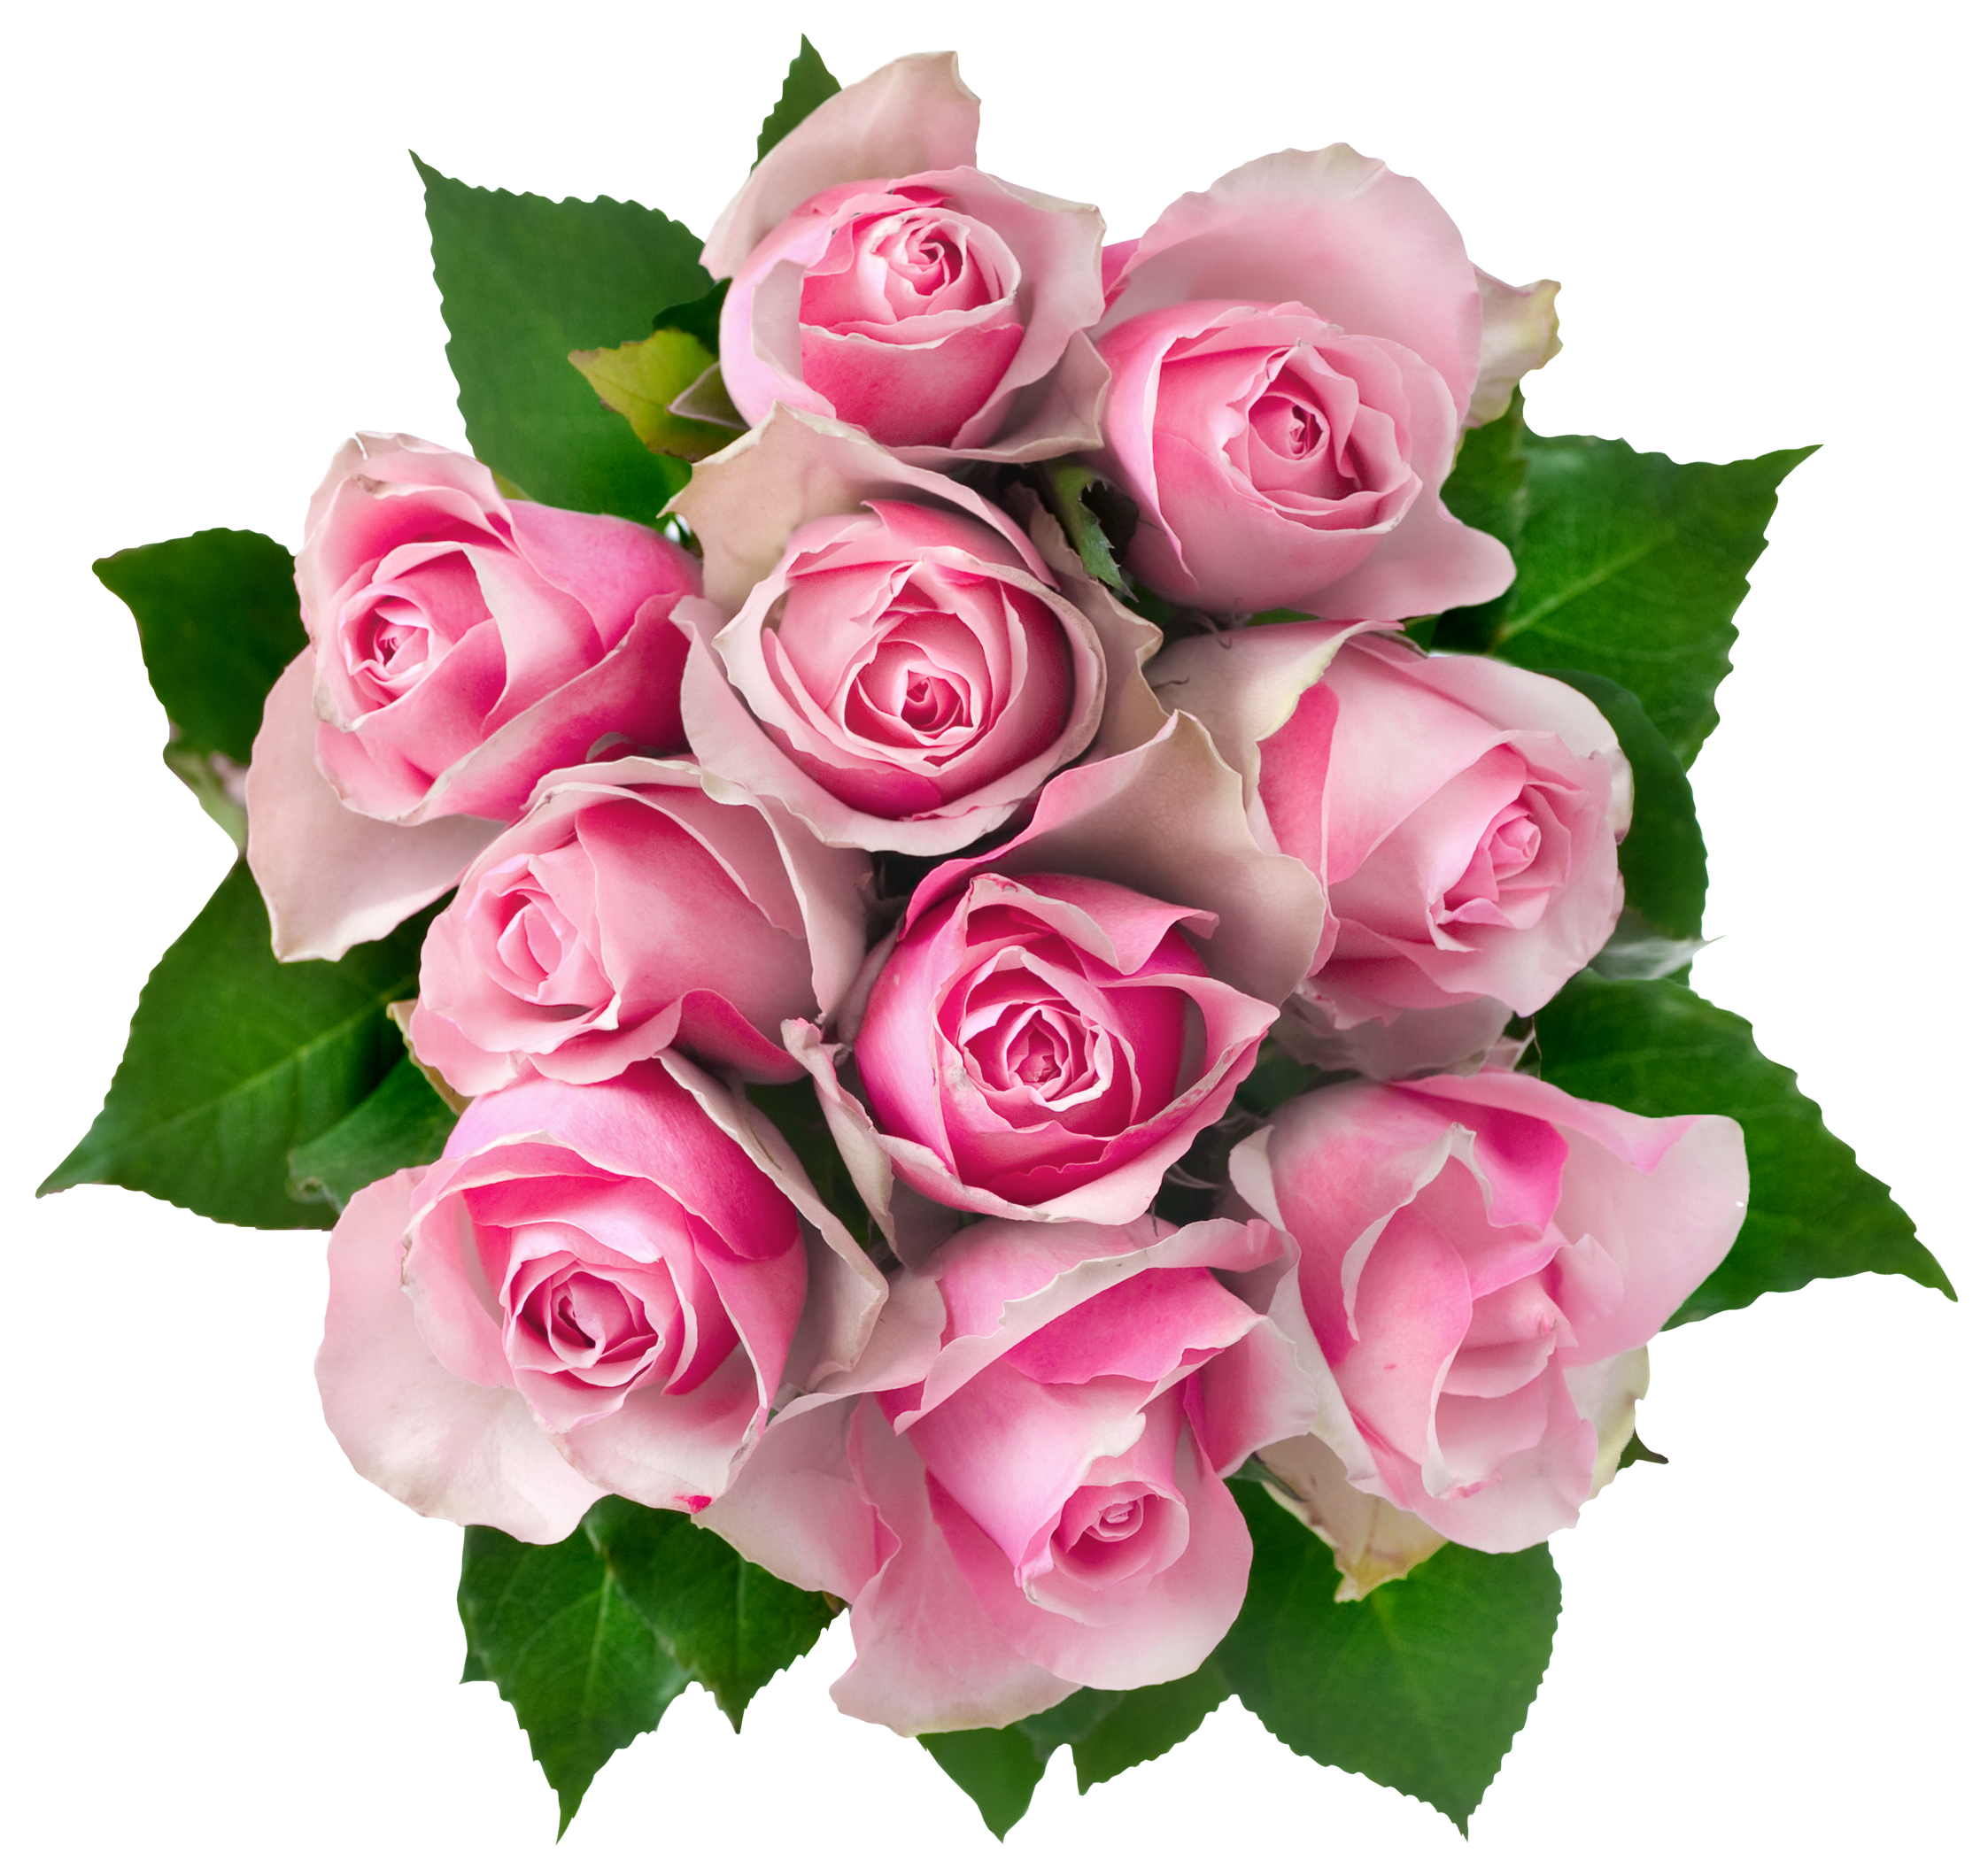 Bouquet of flowers clipart no background clipground for Images of bouquets of roses